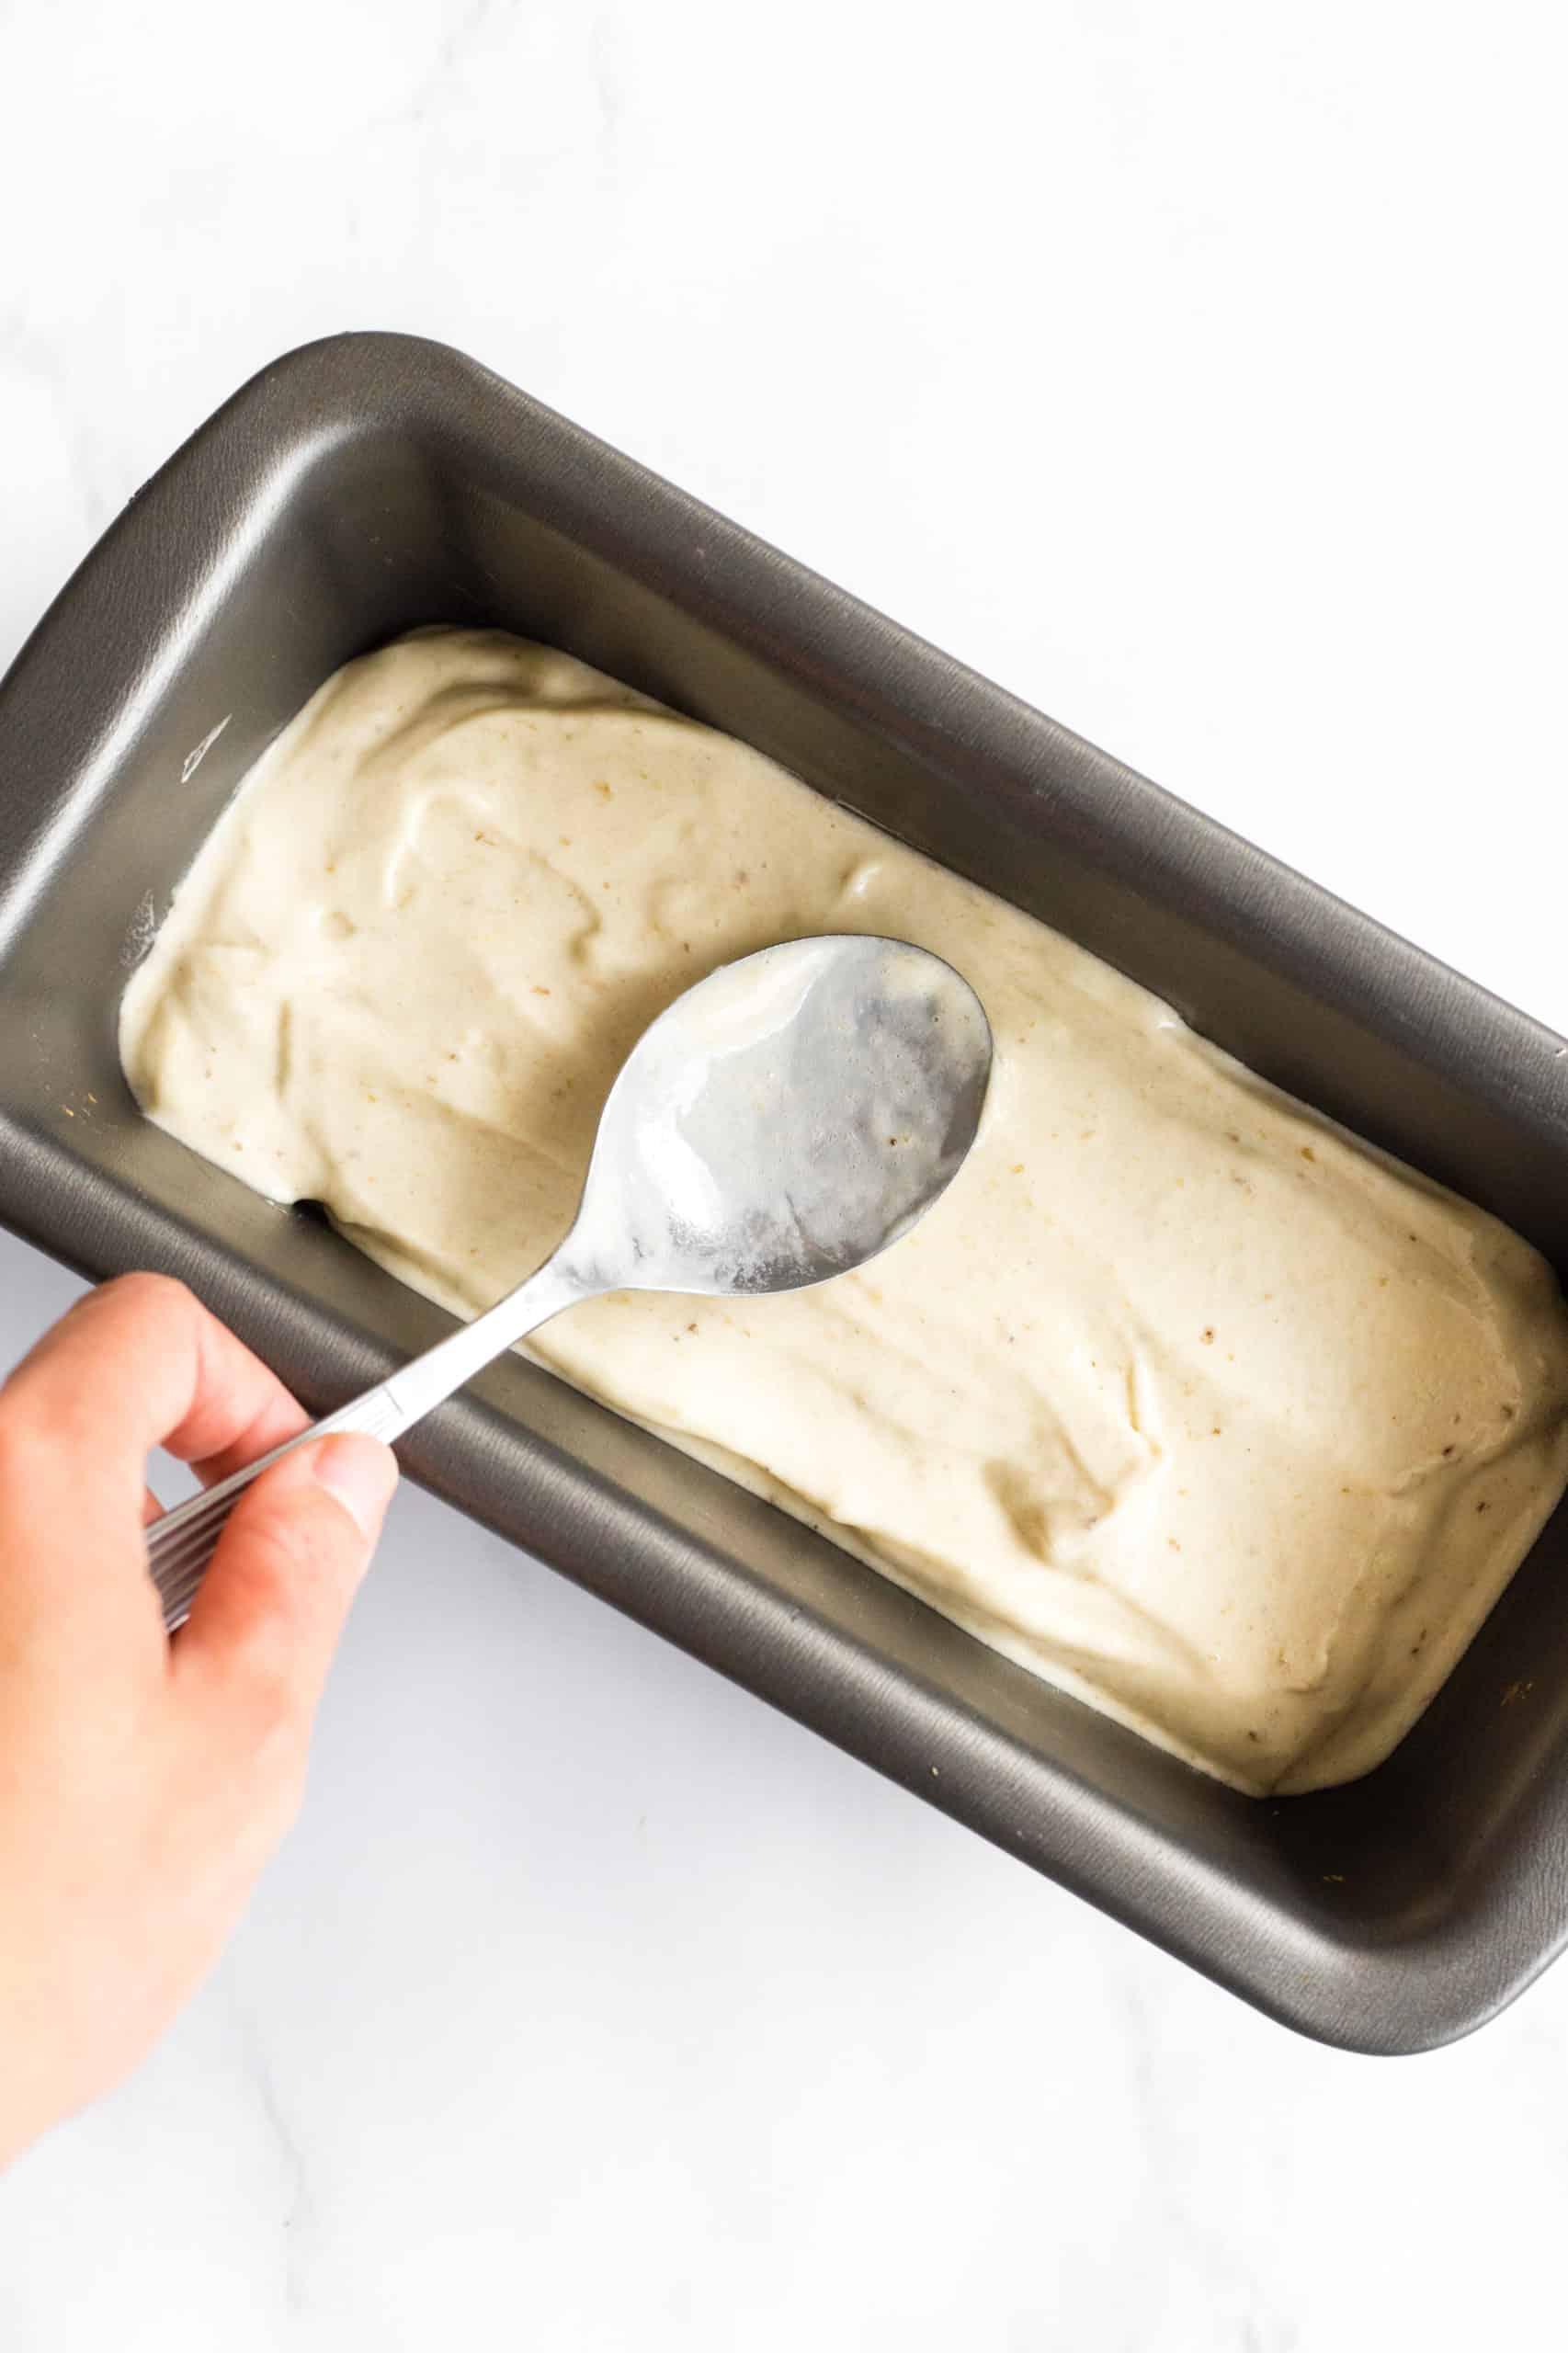 Using a spoon to spread out banana ice cream in a loaf pan to be frozen